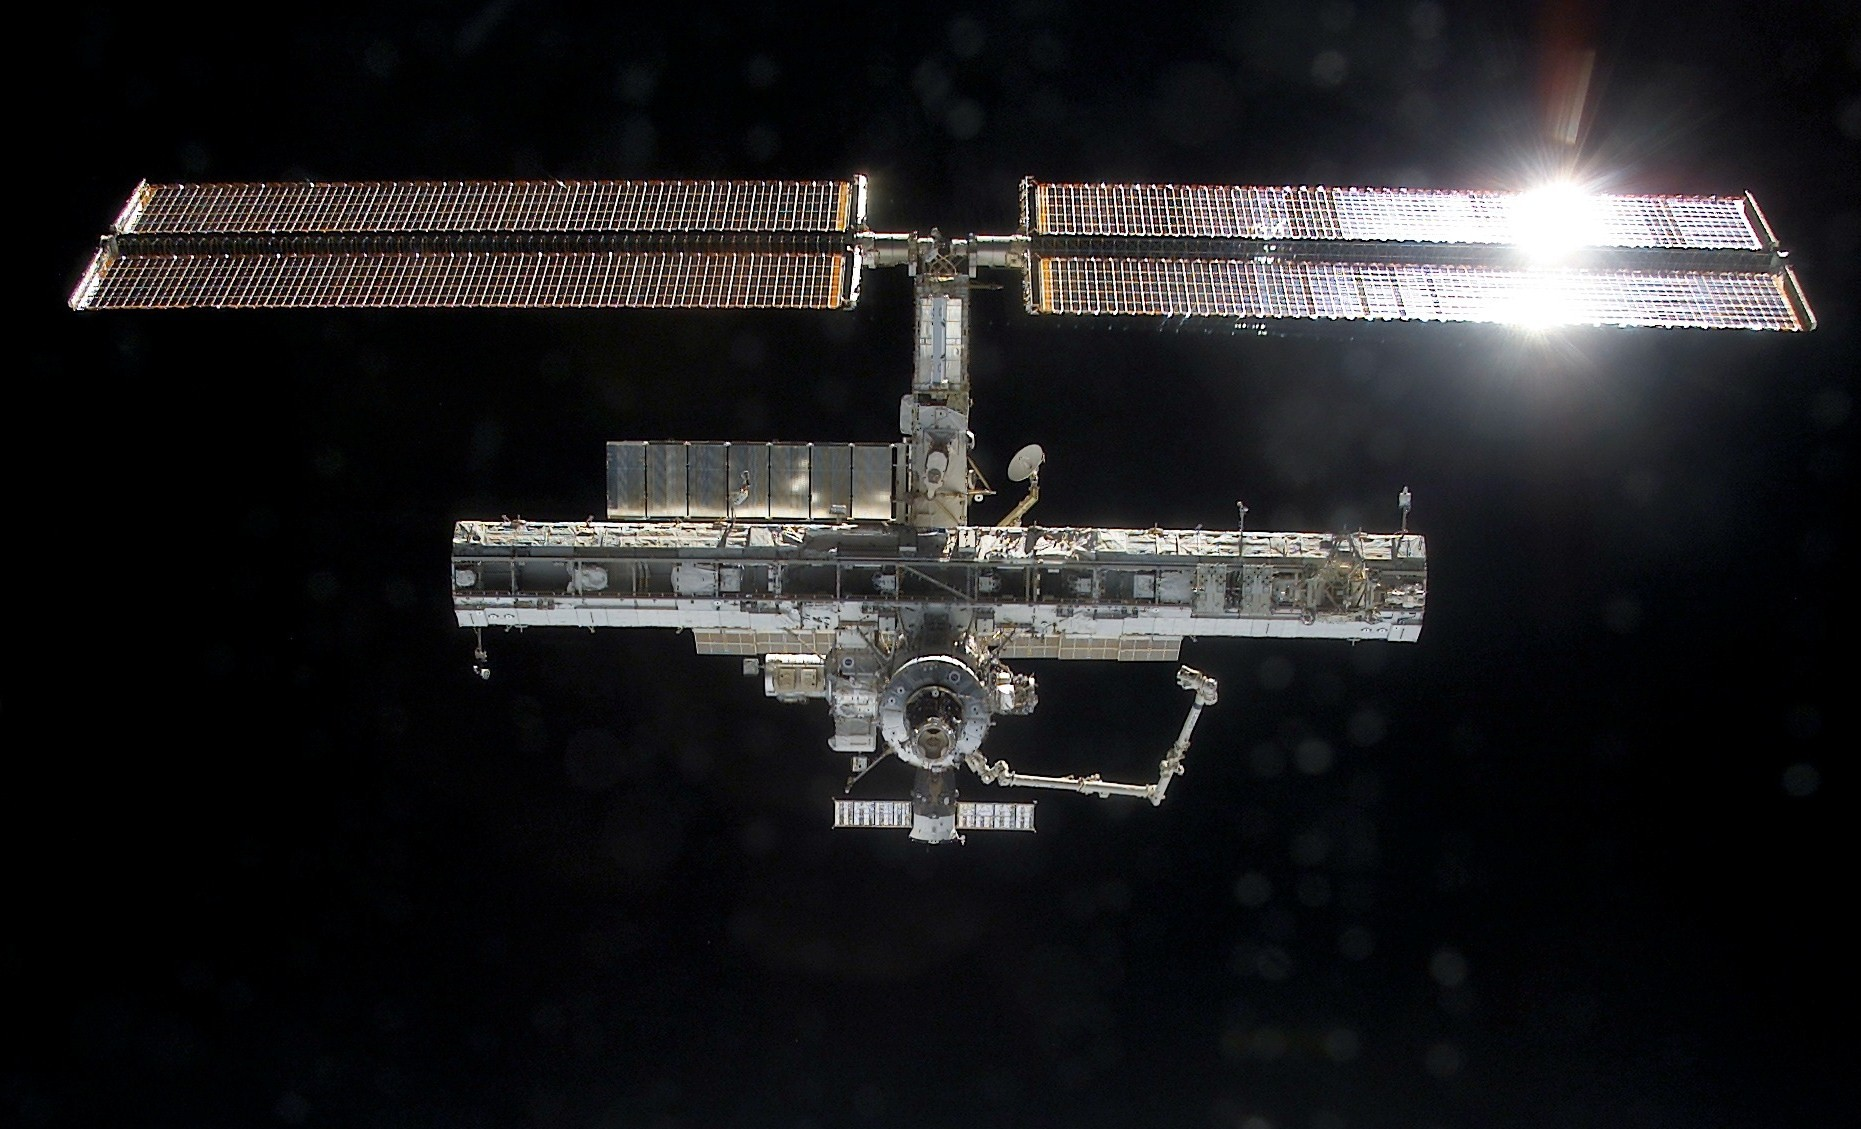 International Space Station with P1 Truss. Image credit Wikimedia